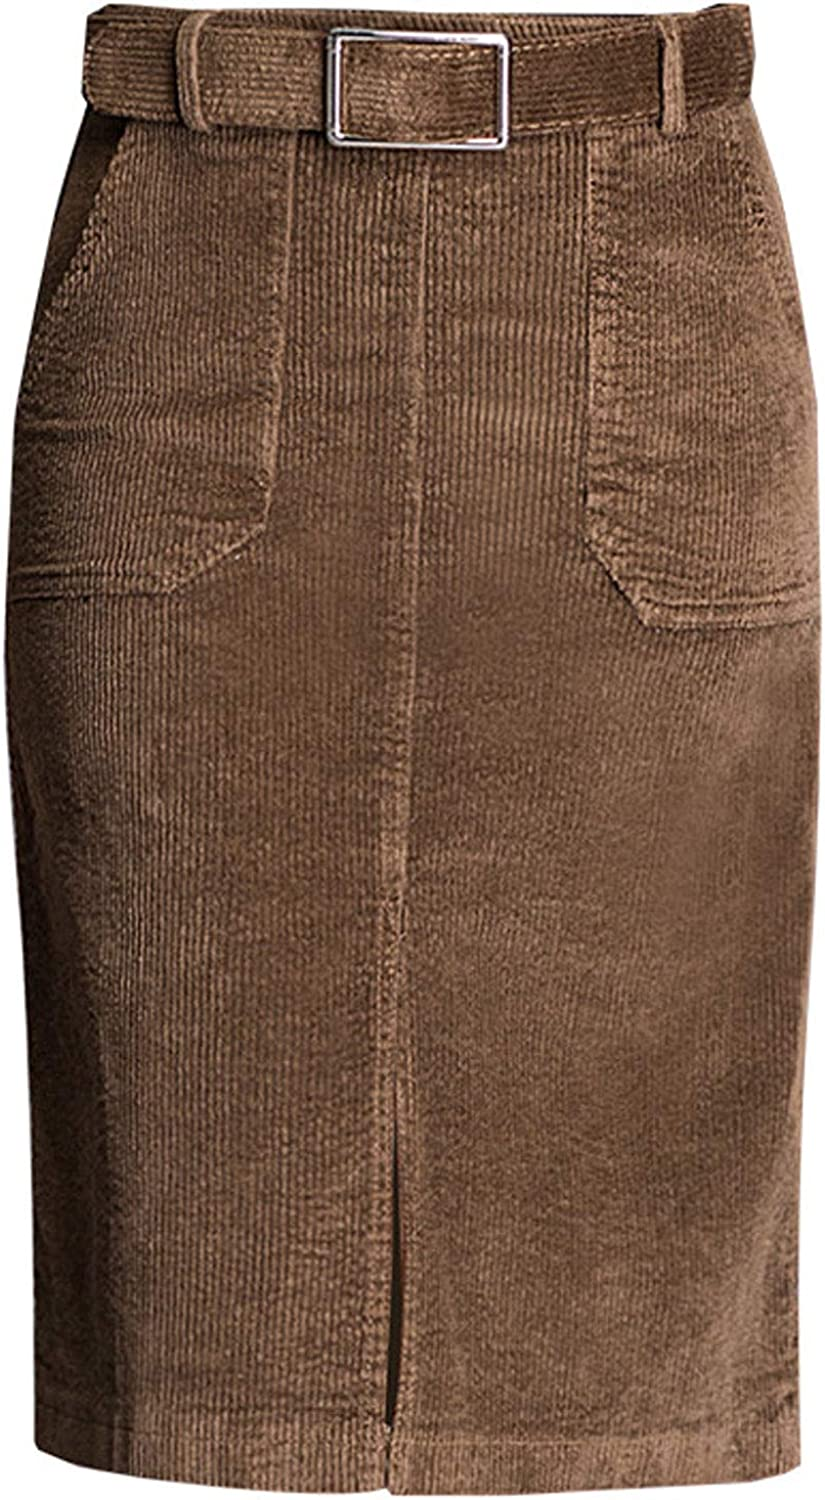 ebossy Women's High Waisted Knee Length Belted Corduroy Pencil Skirt with Slit